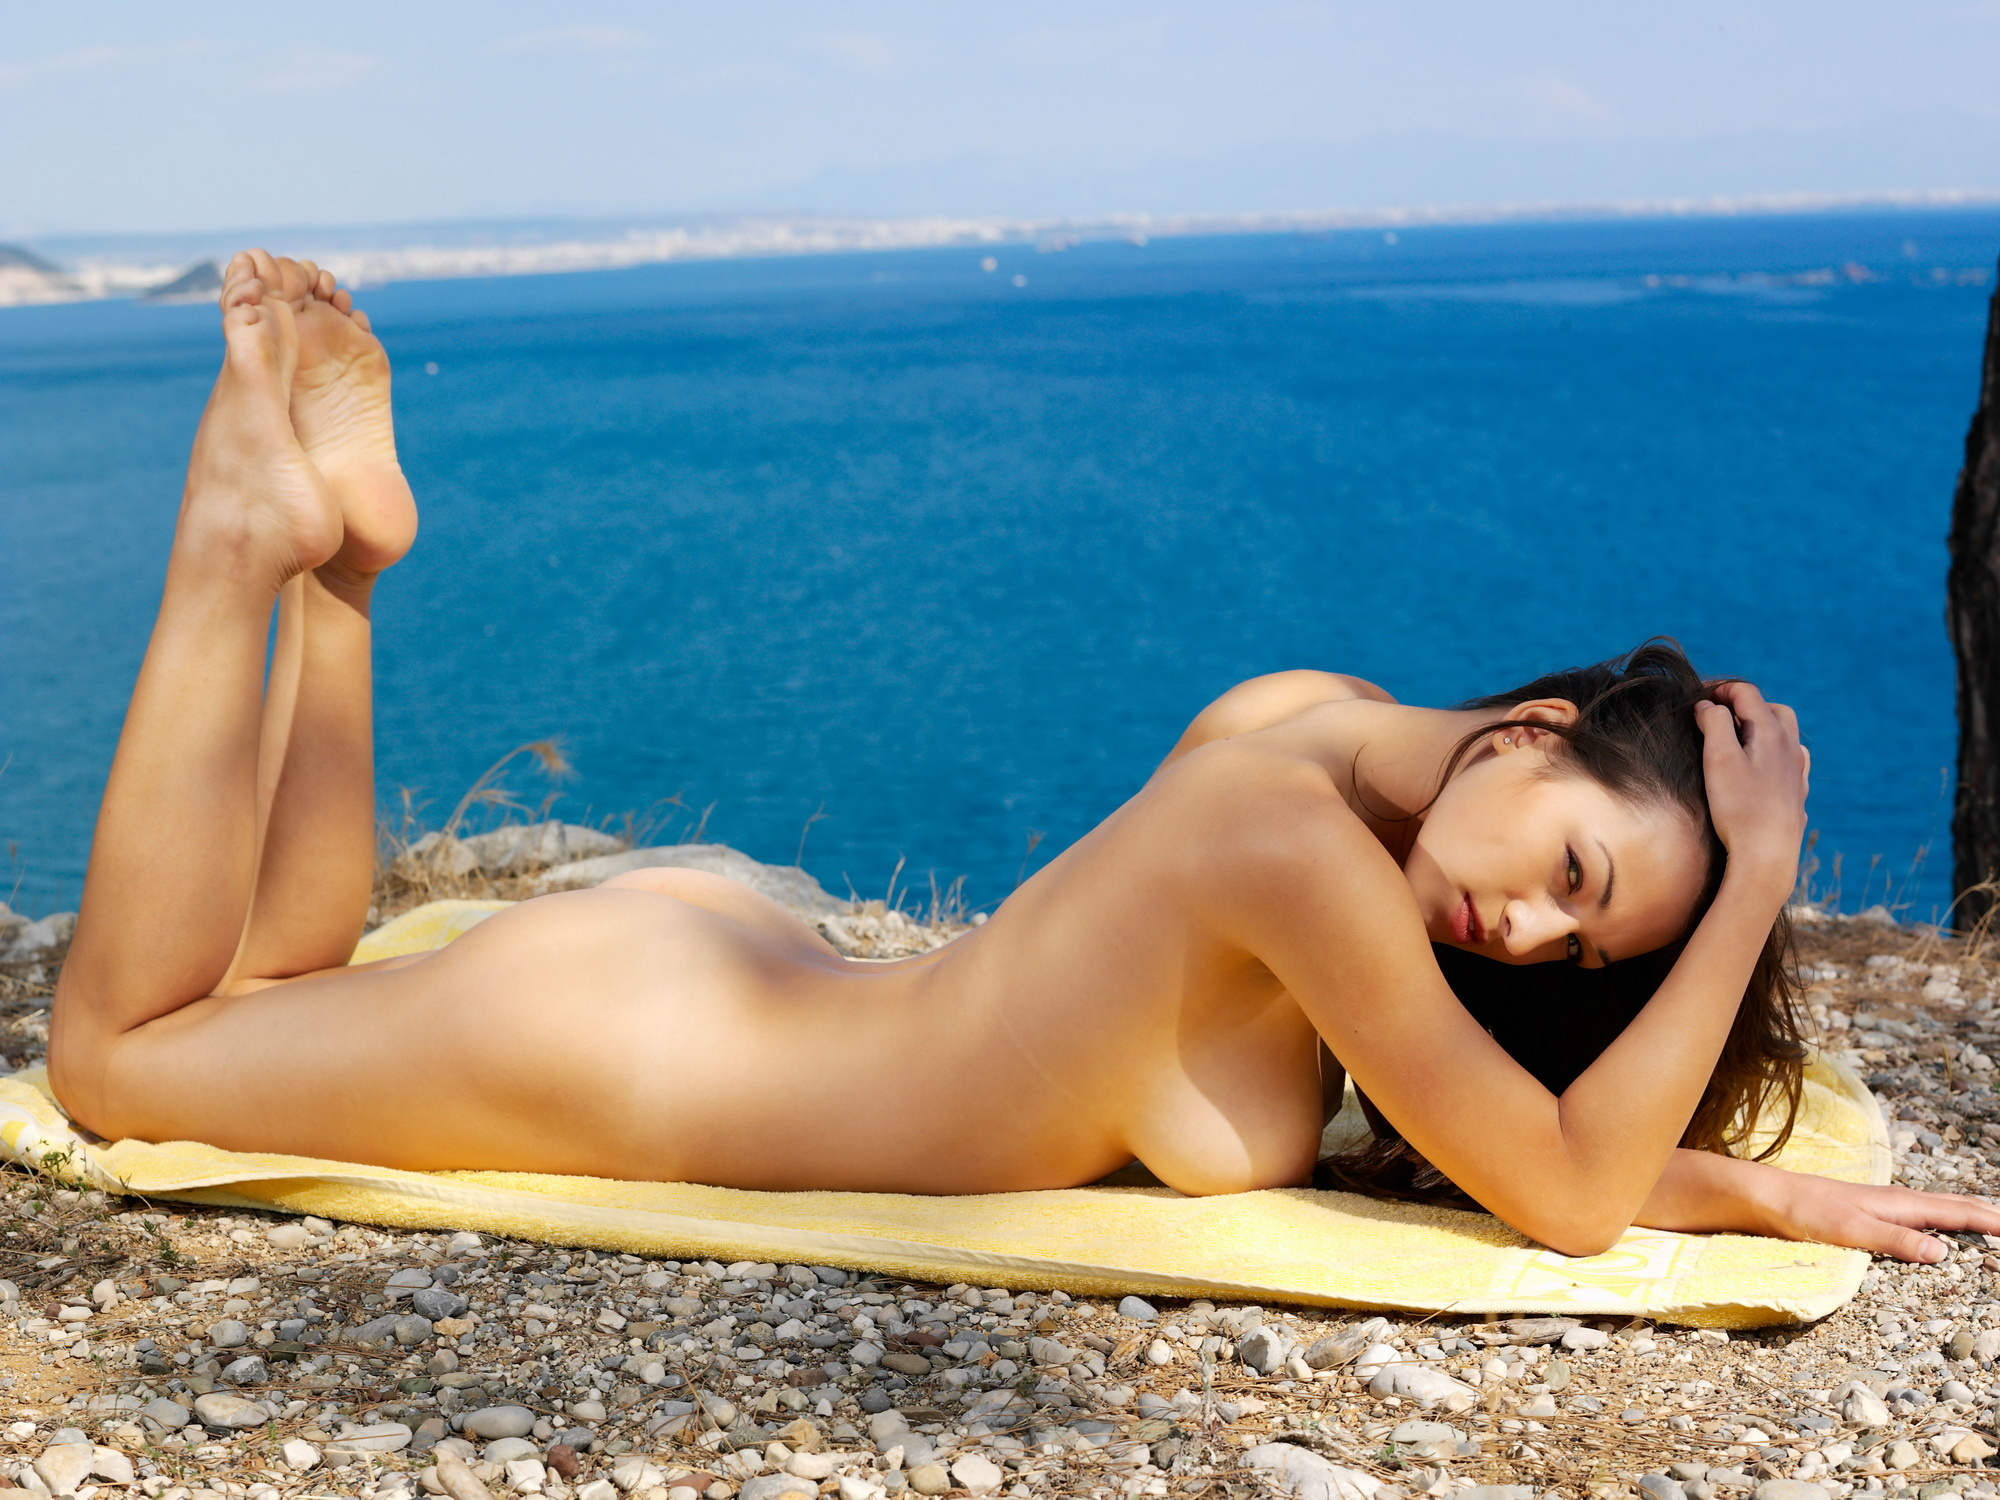 high-def-beach-nudes-beer-two-guys-naked-nude